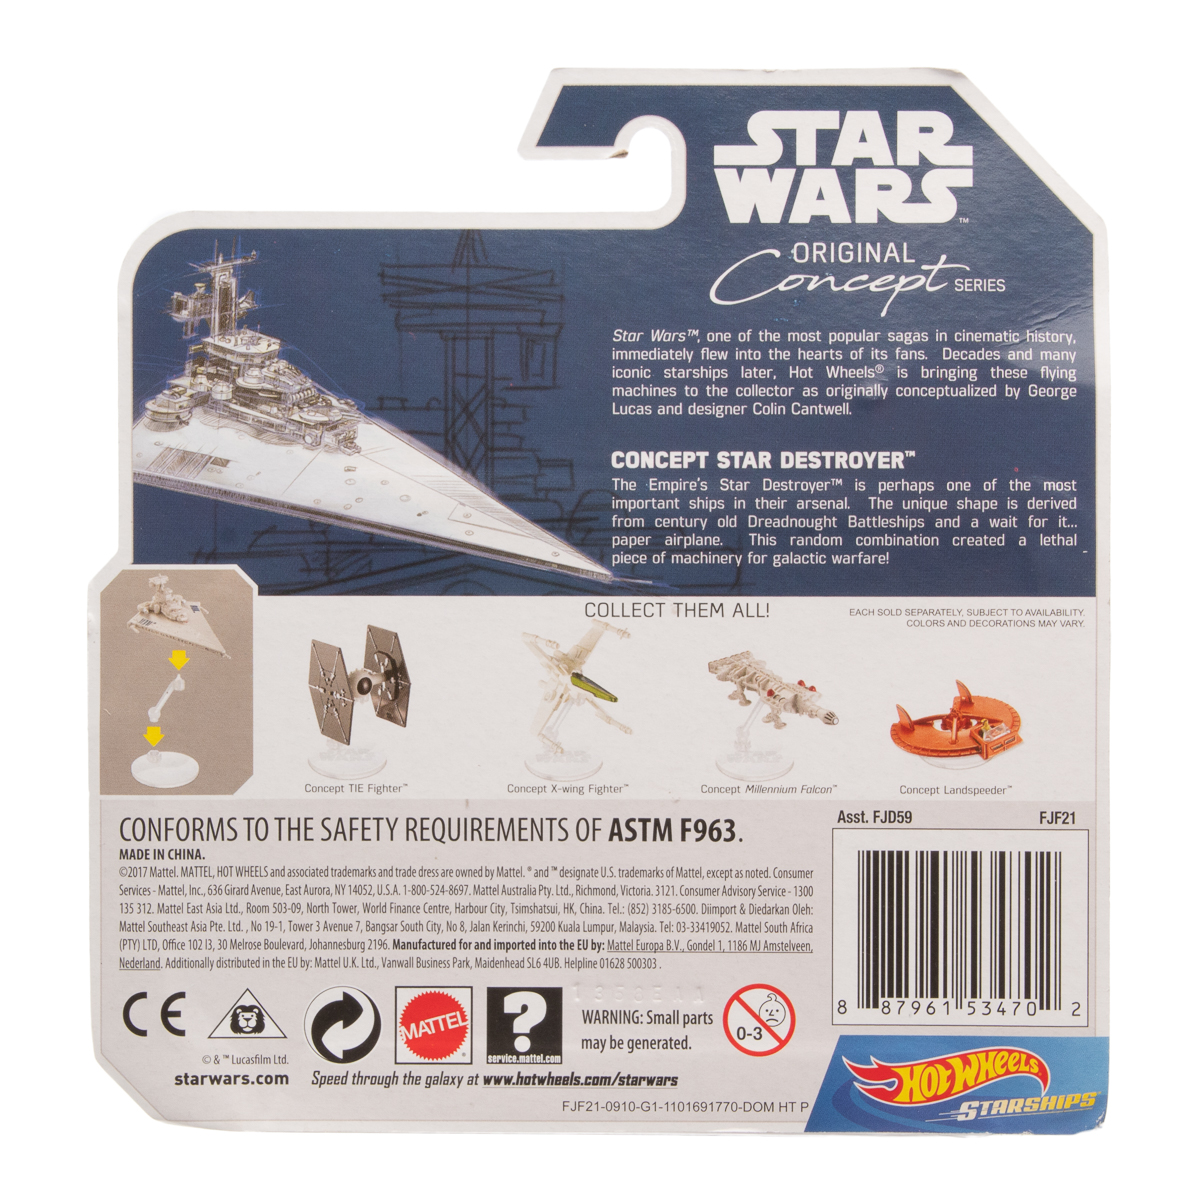 Hot-Wheels-Disney-Star-Wars-Original-Concept-Starships-Diecast-Model-Toys-Stands thumbnail 20